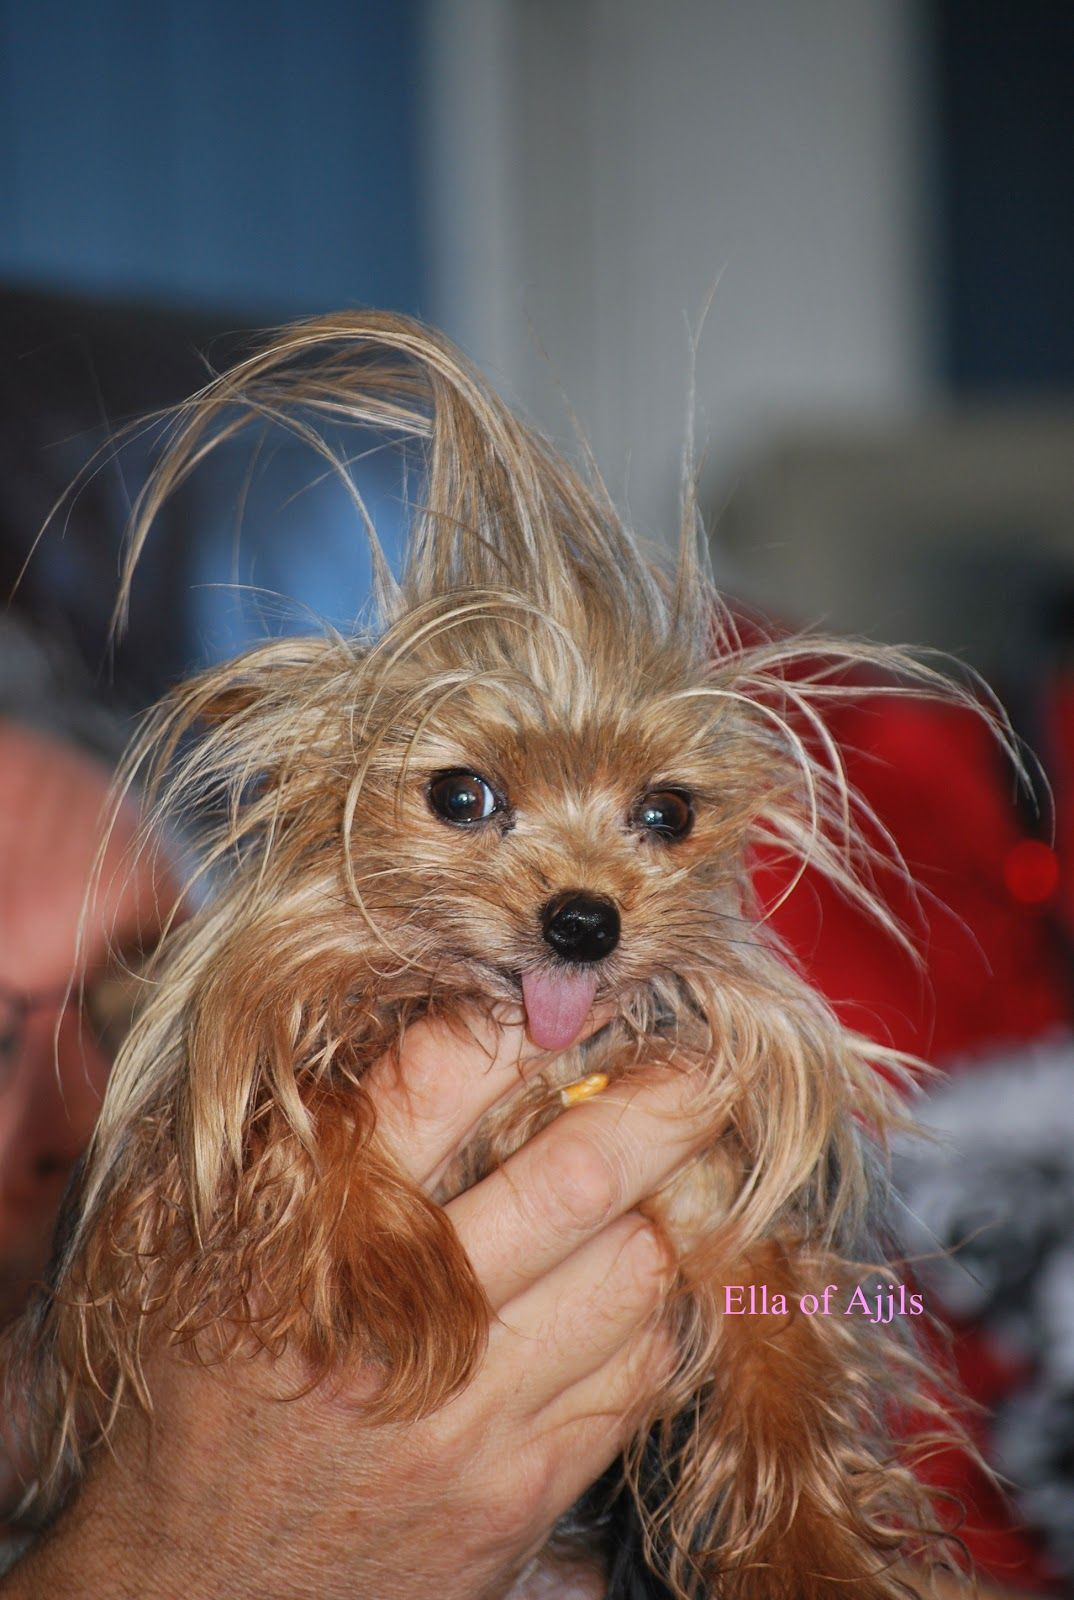 yorkie puppy hair yorkie with crazy hair dogs yorkies perros 5517